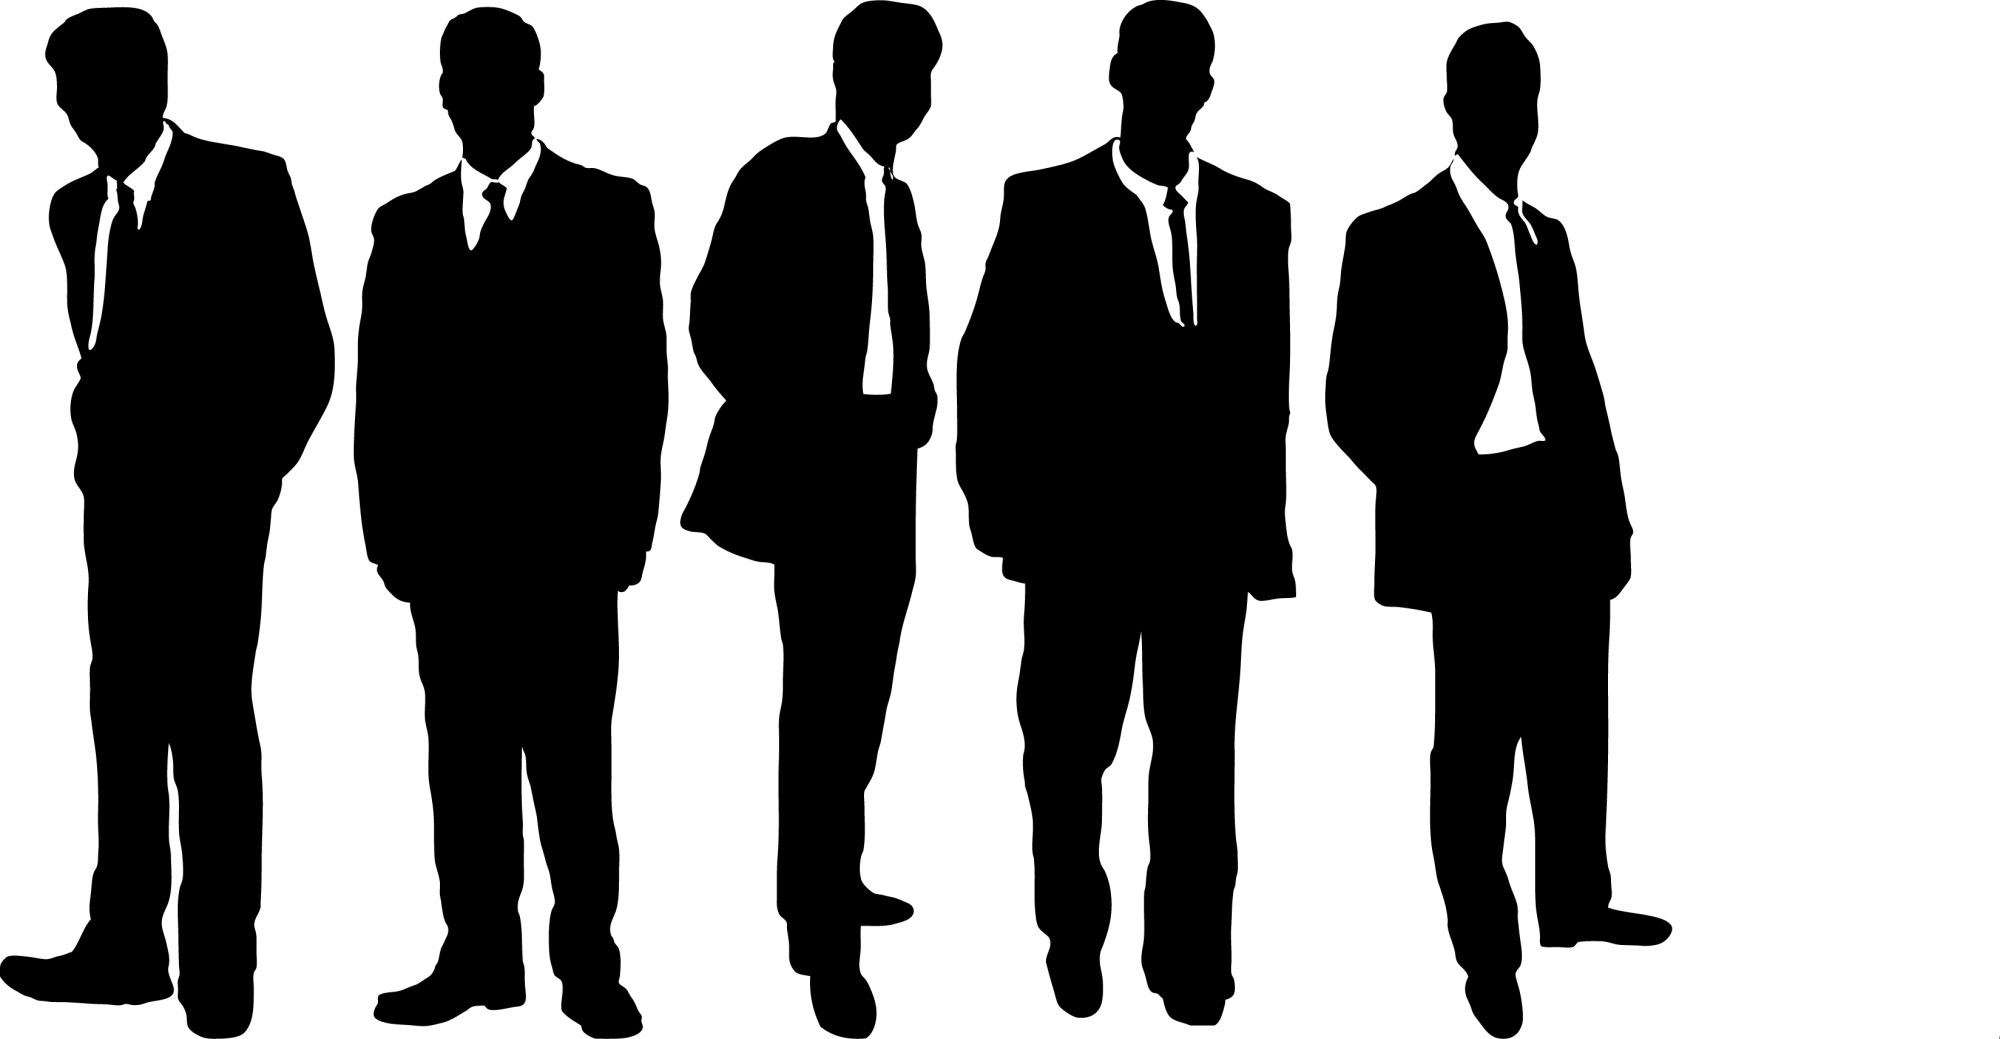 hight resolution of 3296x1713 people clipart